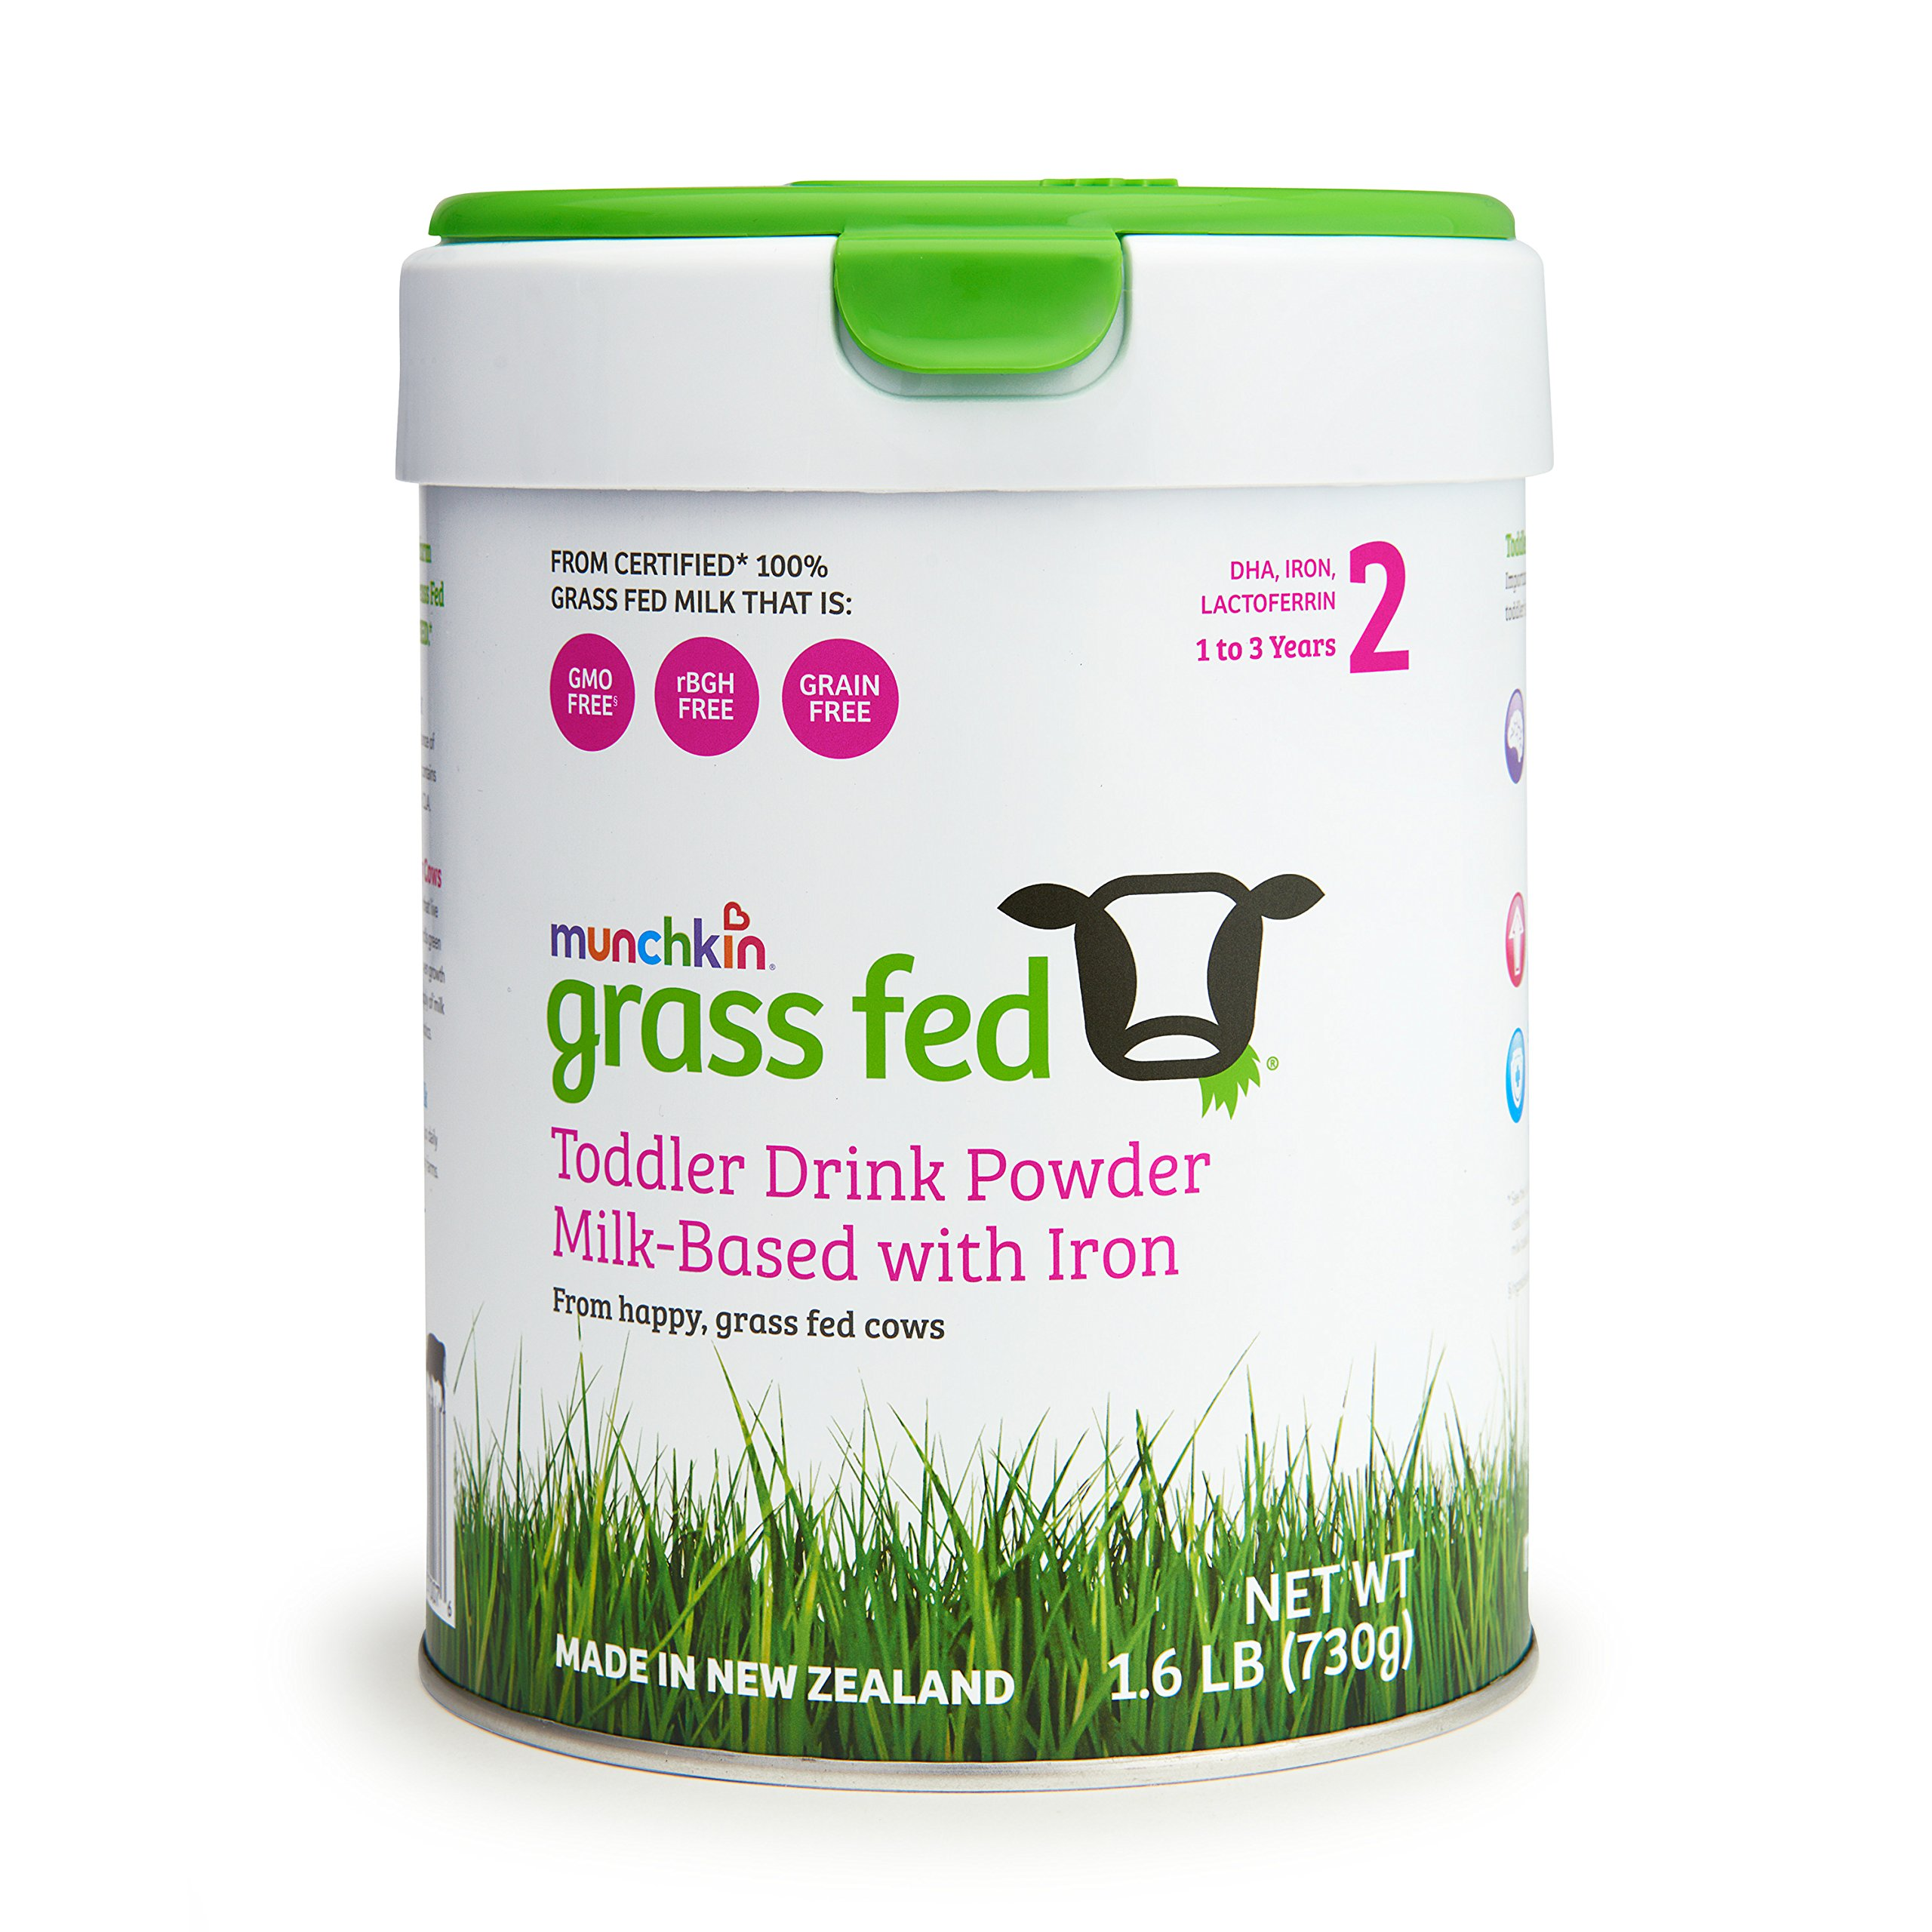 Munchkin Grass Fed Toddler Milk Drink, 1-3 Years, 25.75 Ounce